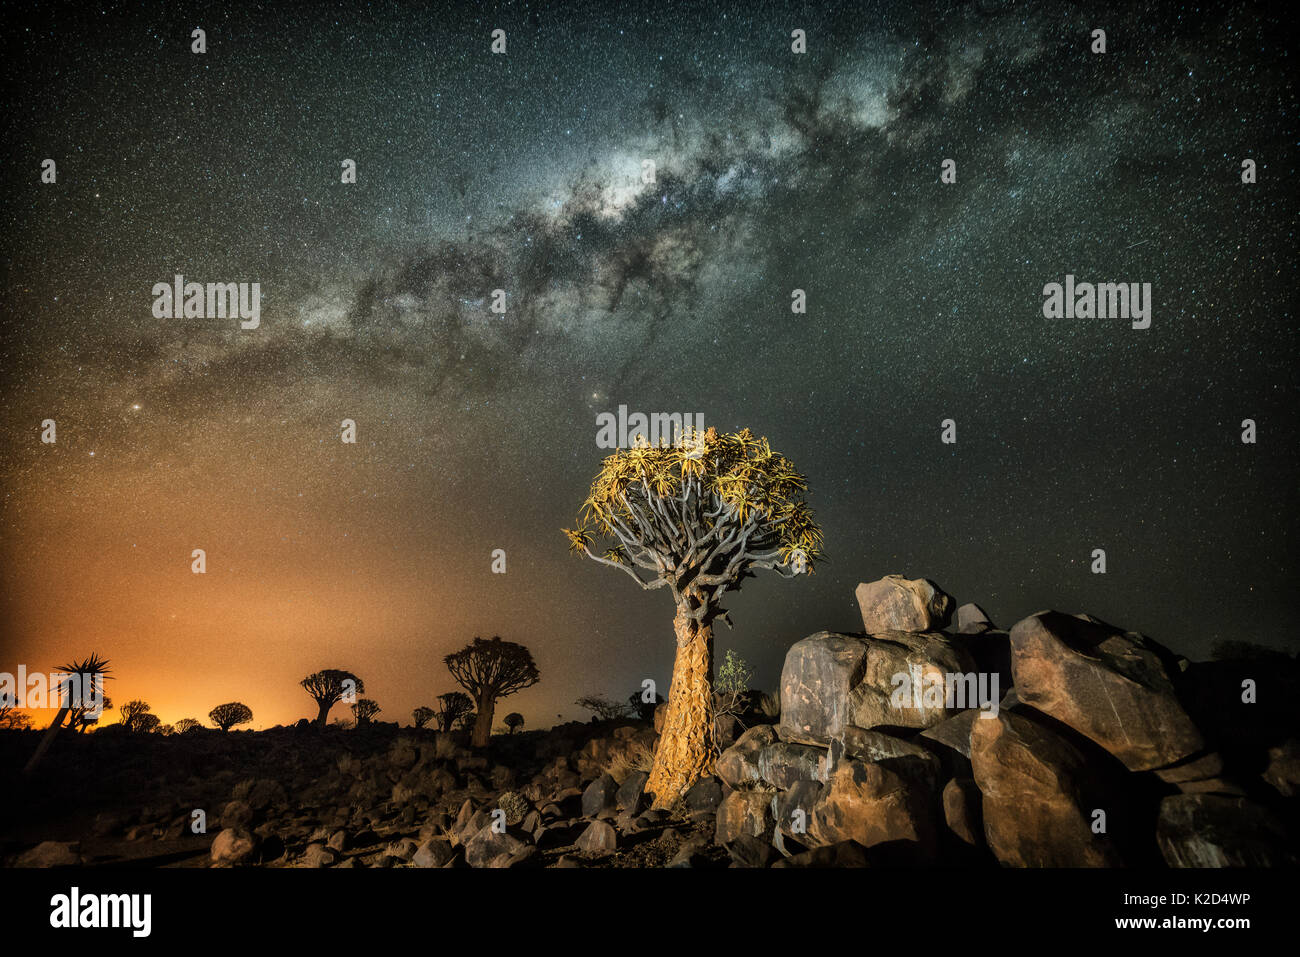 Quiver tree (Aloe dichotoma) with the Milky Way at night, and light pollution from town in the distance, Keetmanshoop, Namibia. Colours accentuated digitally. Stock Photo